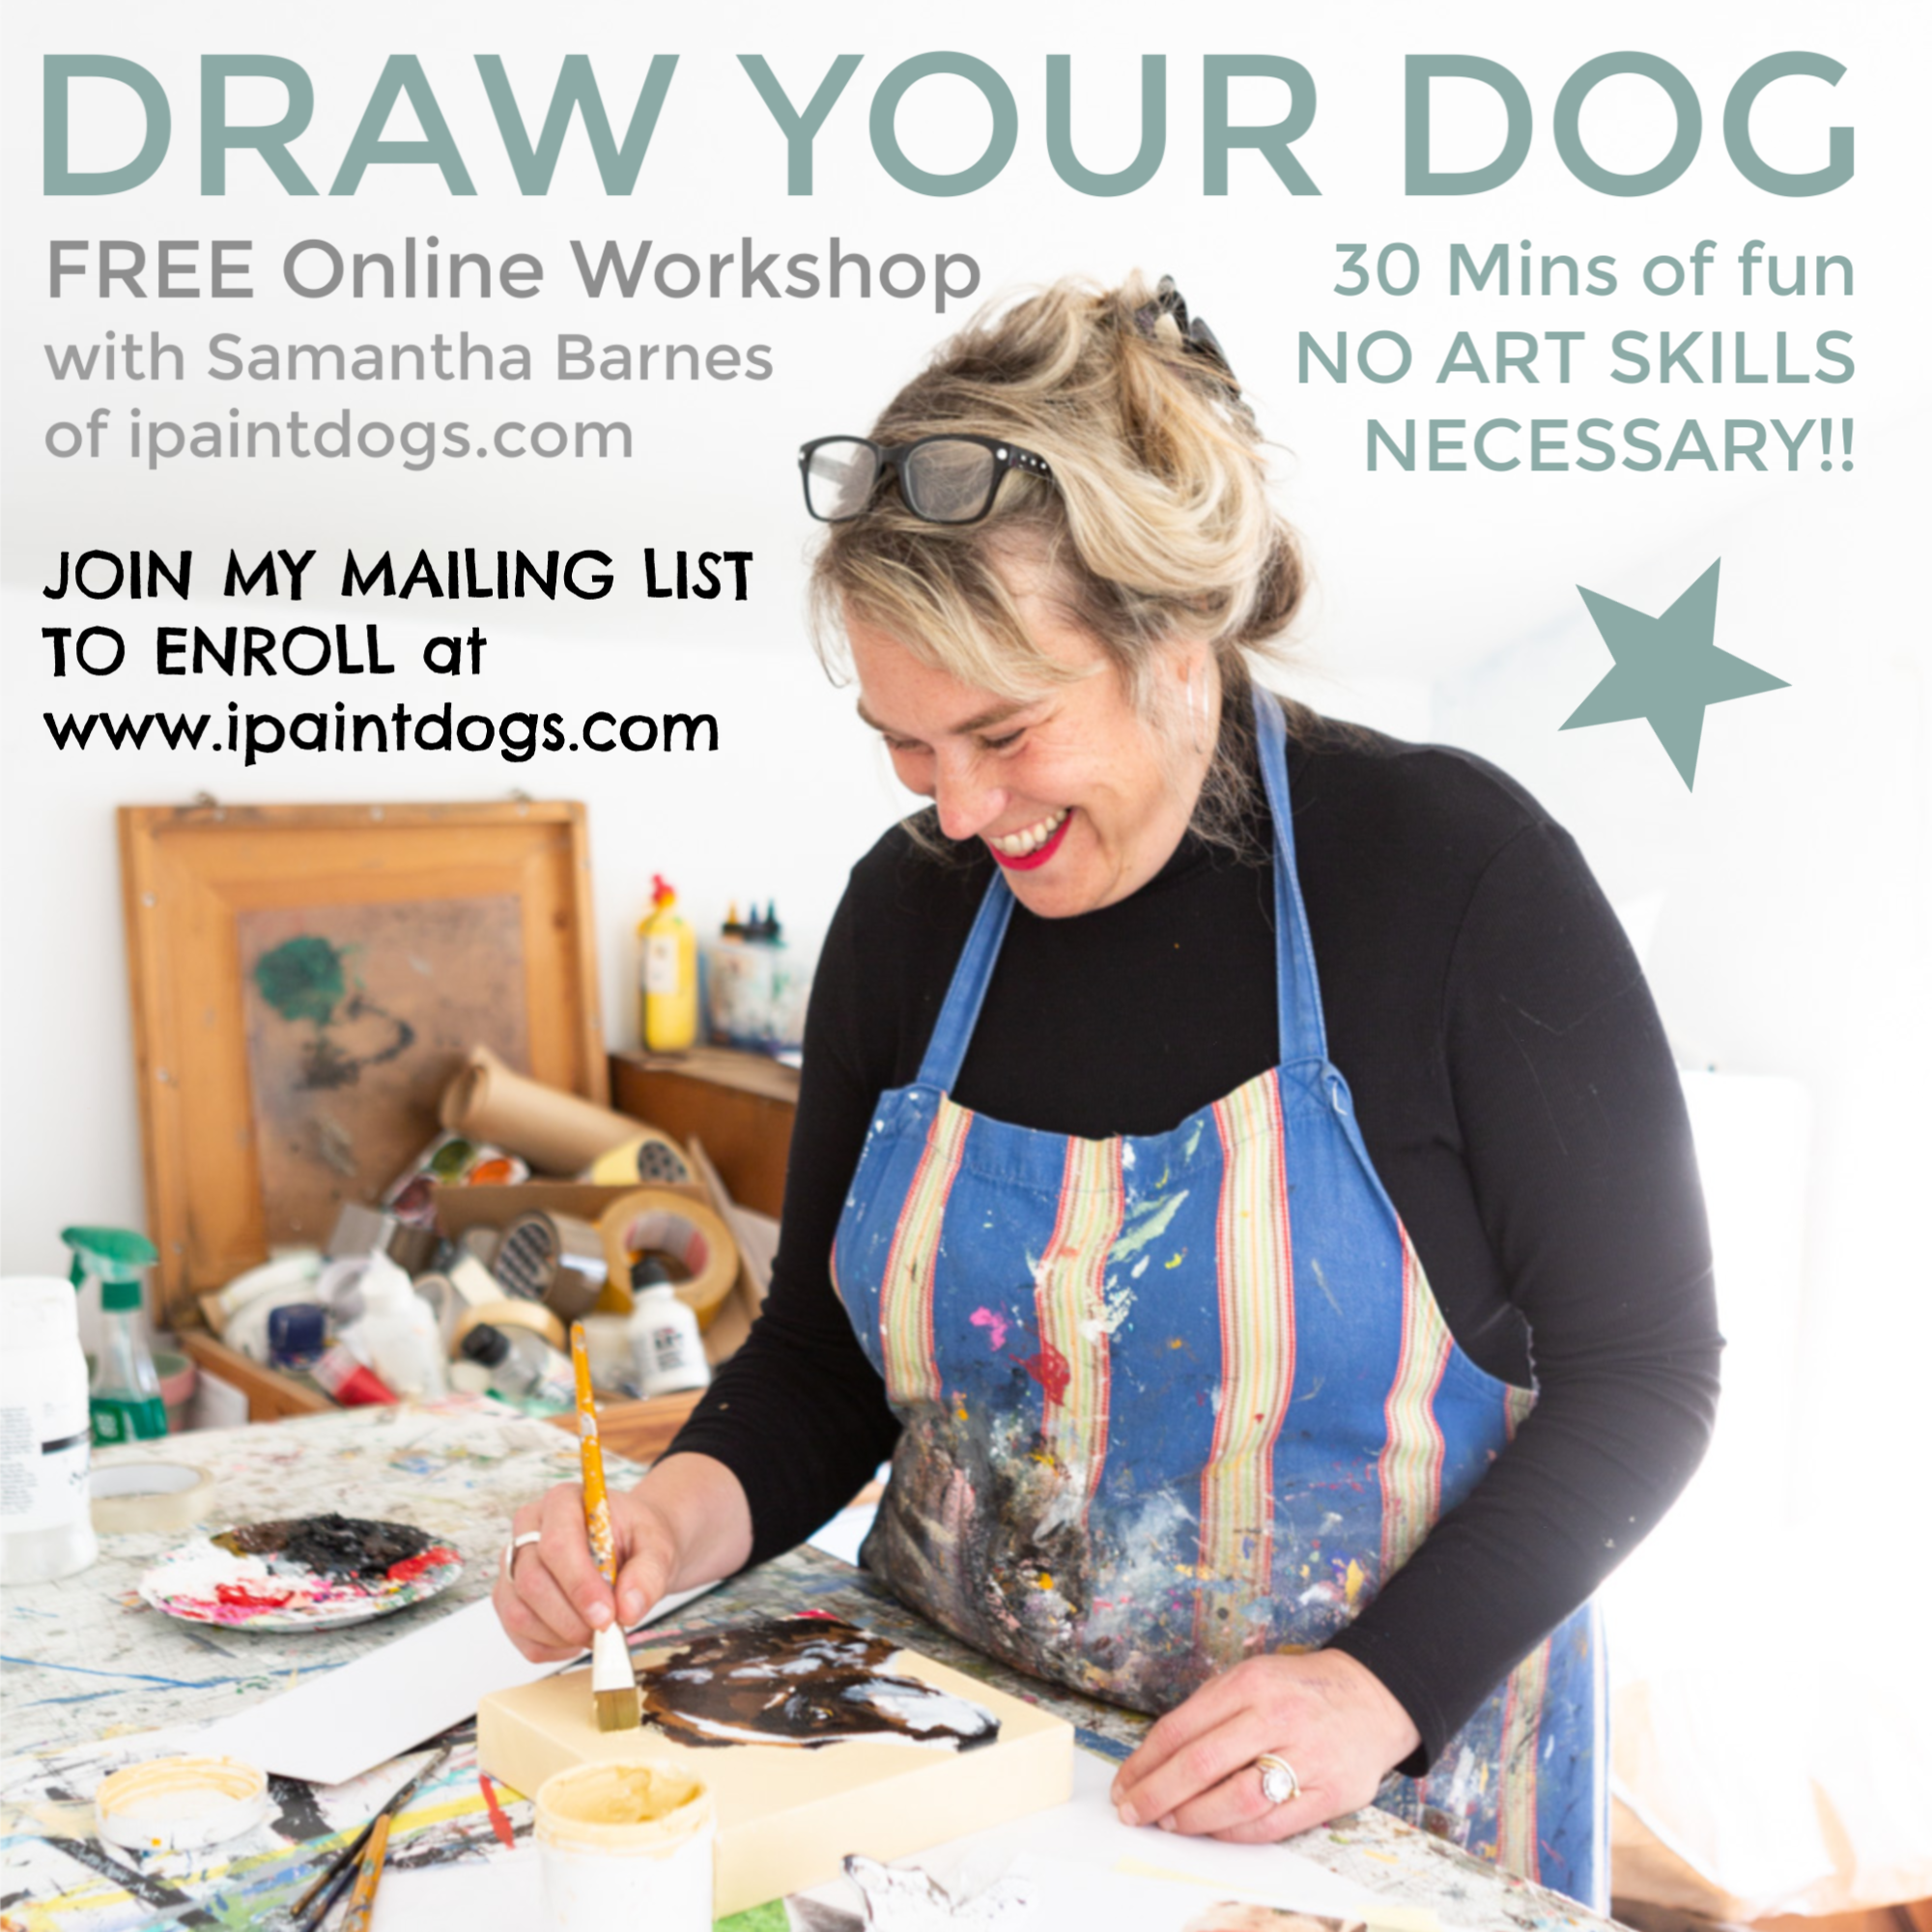 Draw Your Dog, free online workshop by Samantha Barnes ipaintdogs.com